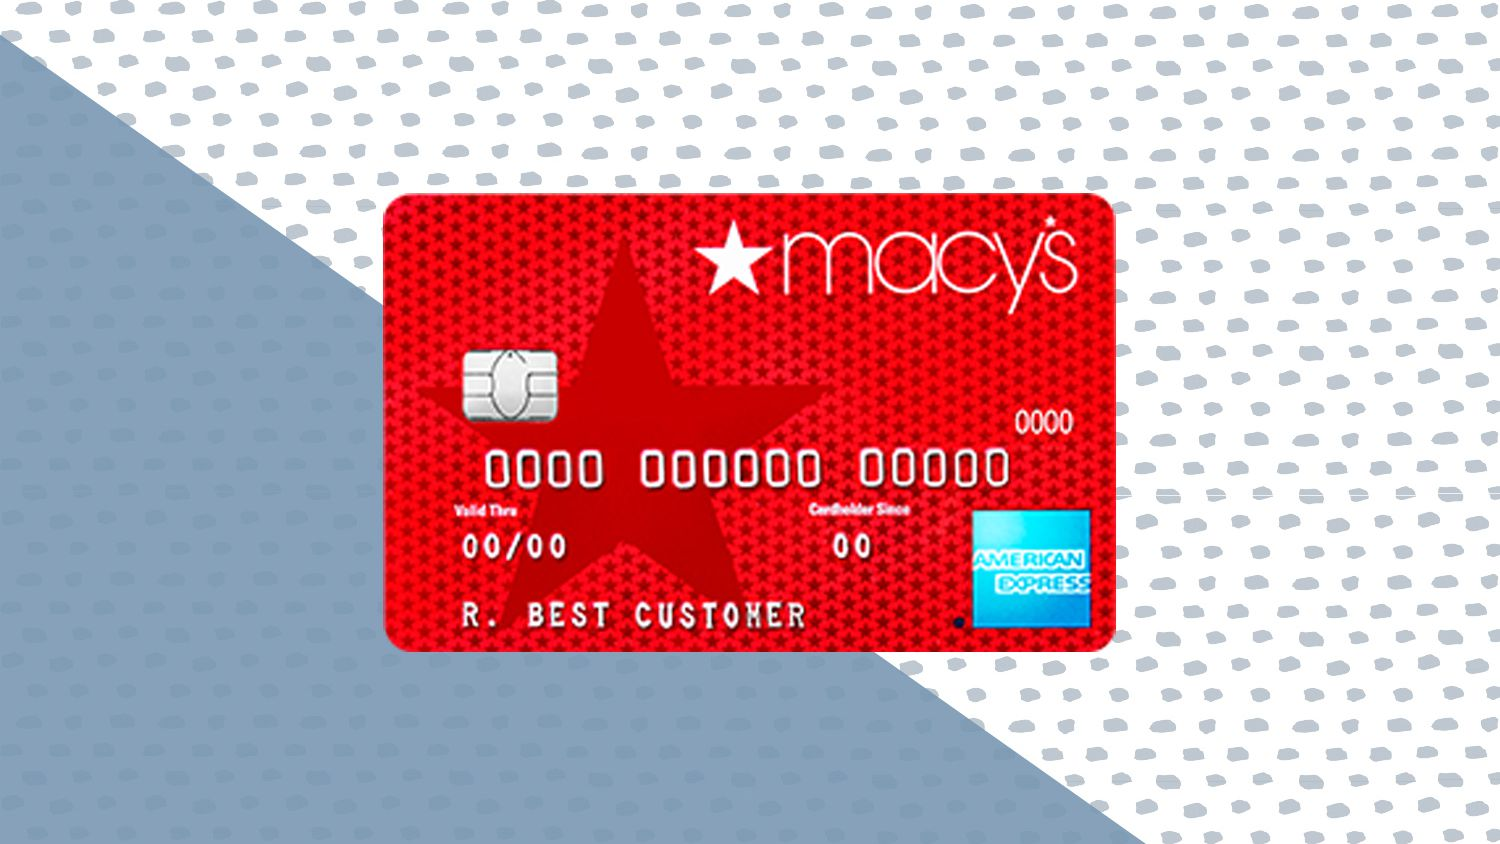 808d22fcfb058 Macy's American Express Credit Card: Save On Macy's Purchases